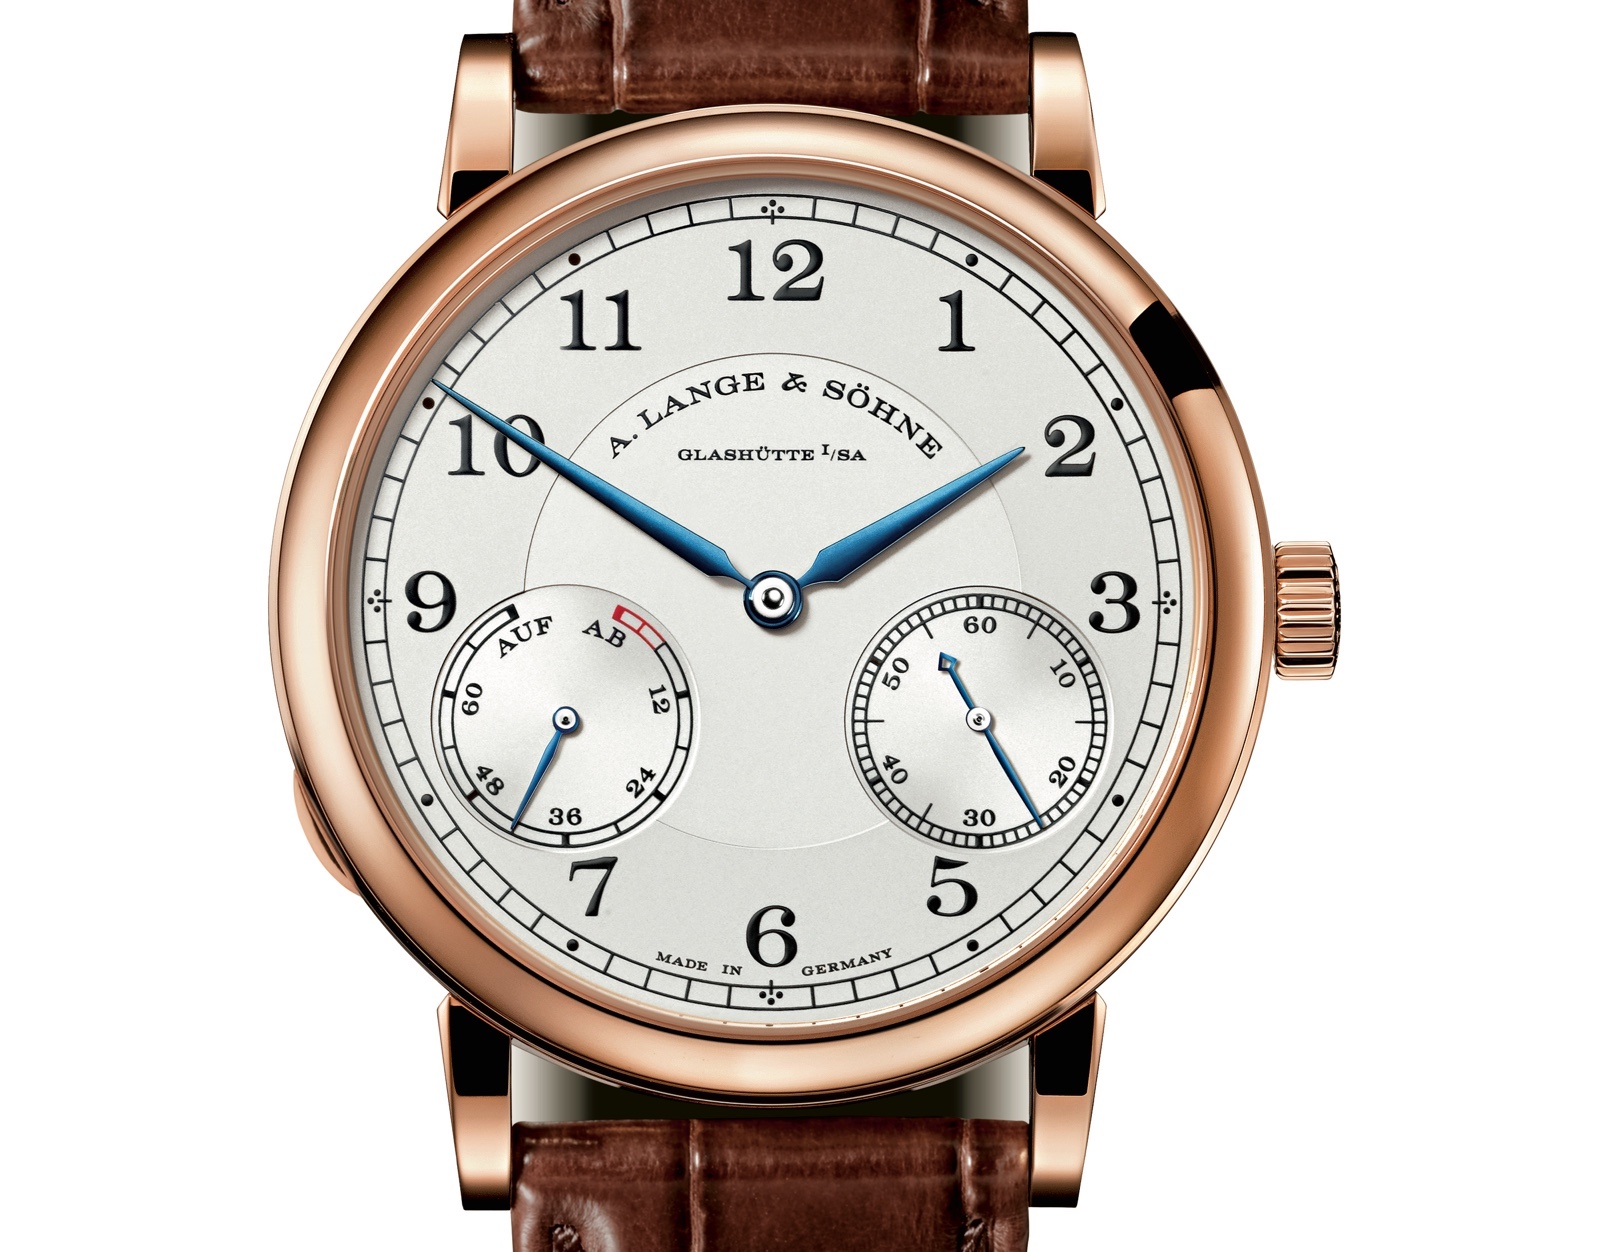 Lange 1815 Up Down 75 Años Suarez Dial